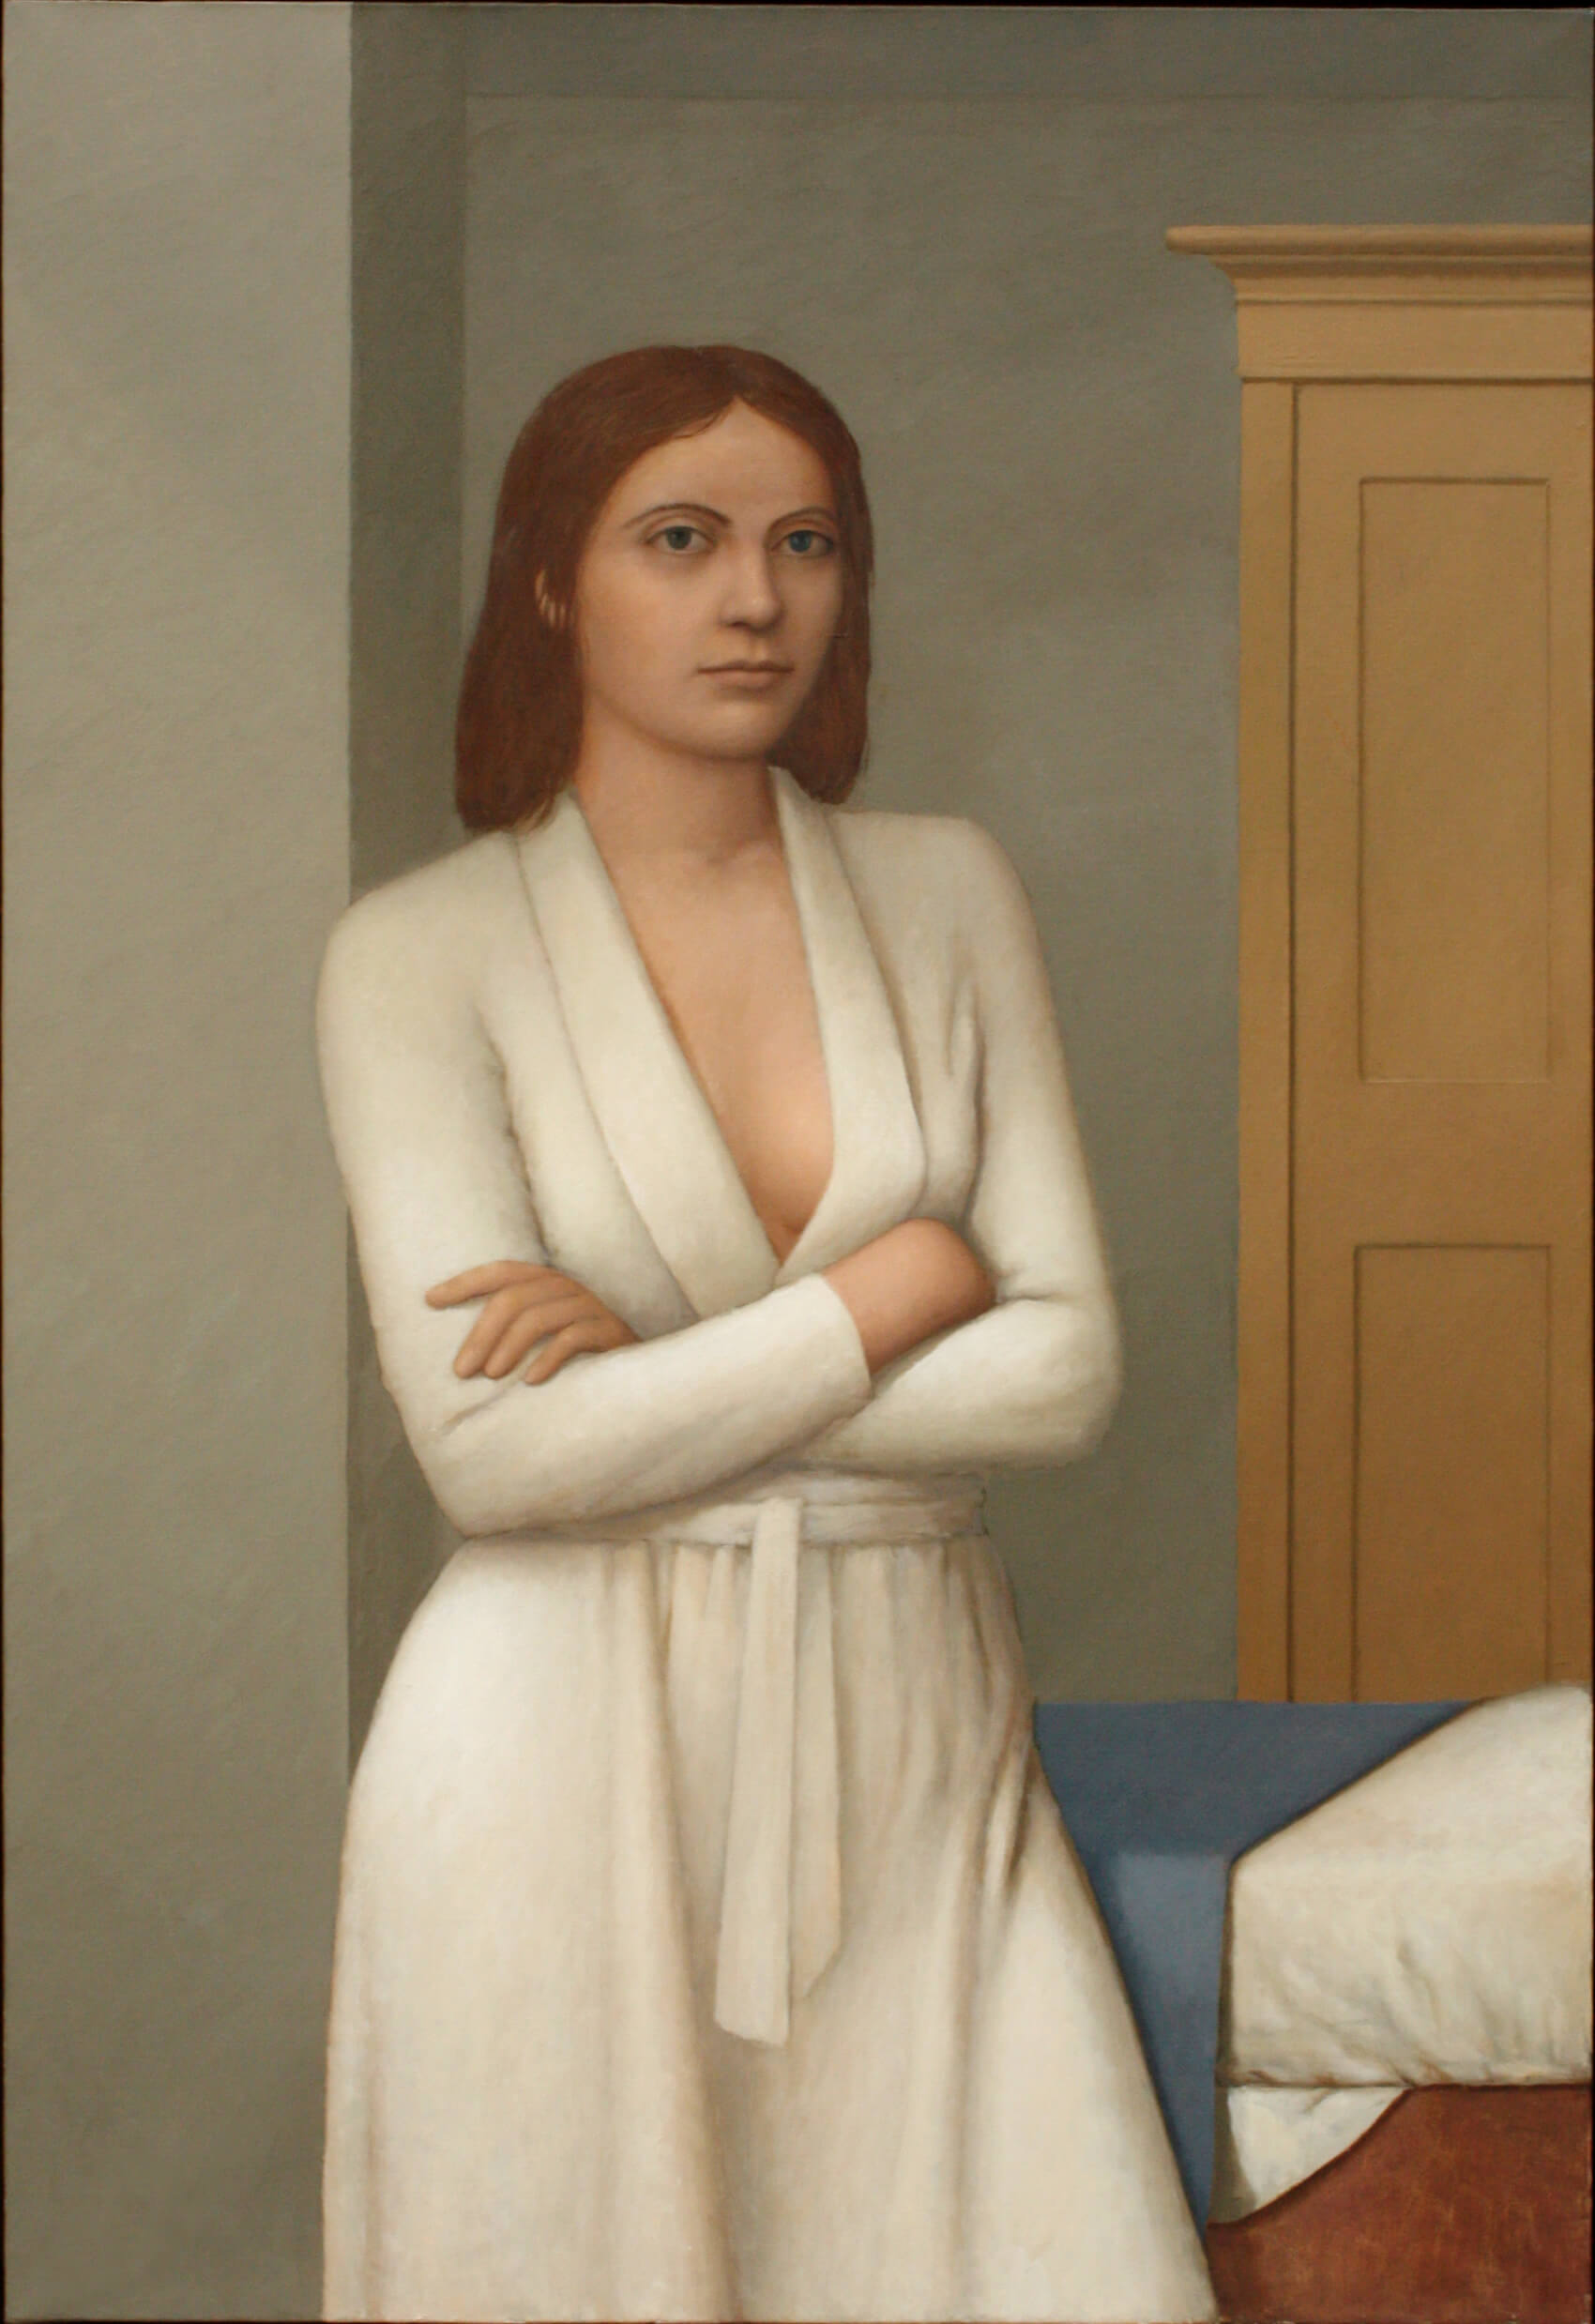 William Bailey, White Robe, 2007-8, oil on linen, 51 1/4 x 35 1/8 inches (courtesy of the artist and Betty Cuningham Gallery)